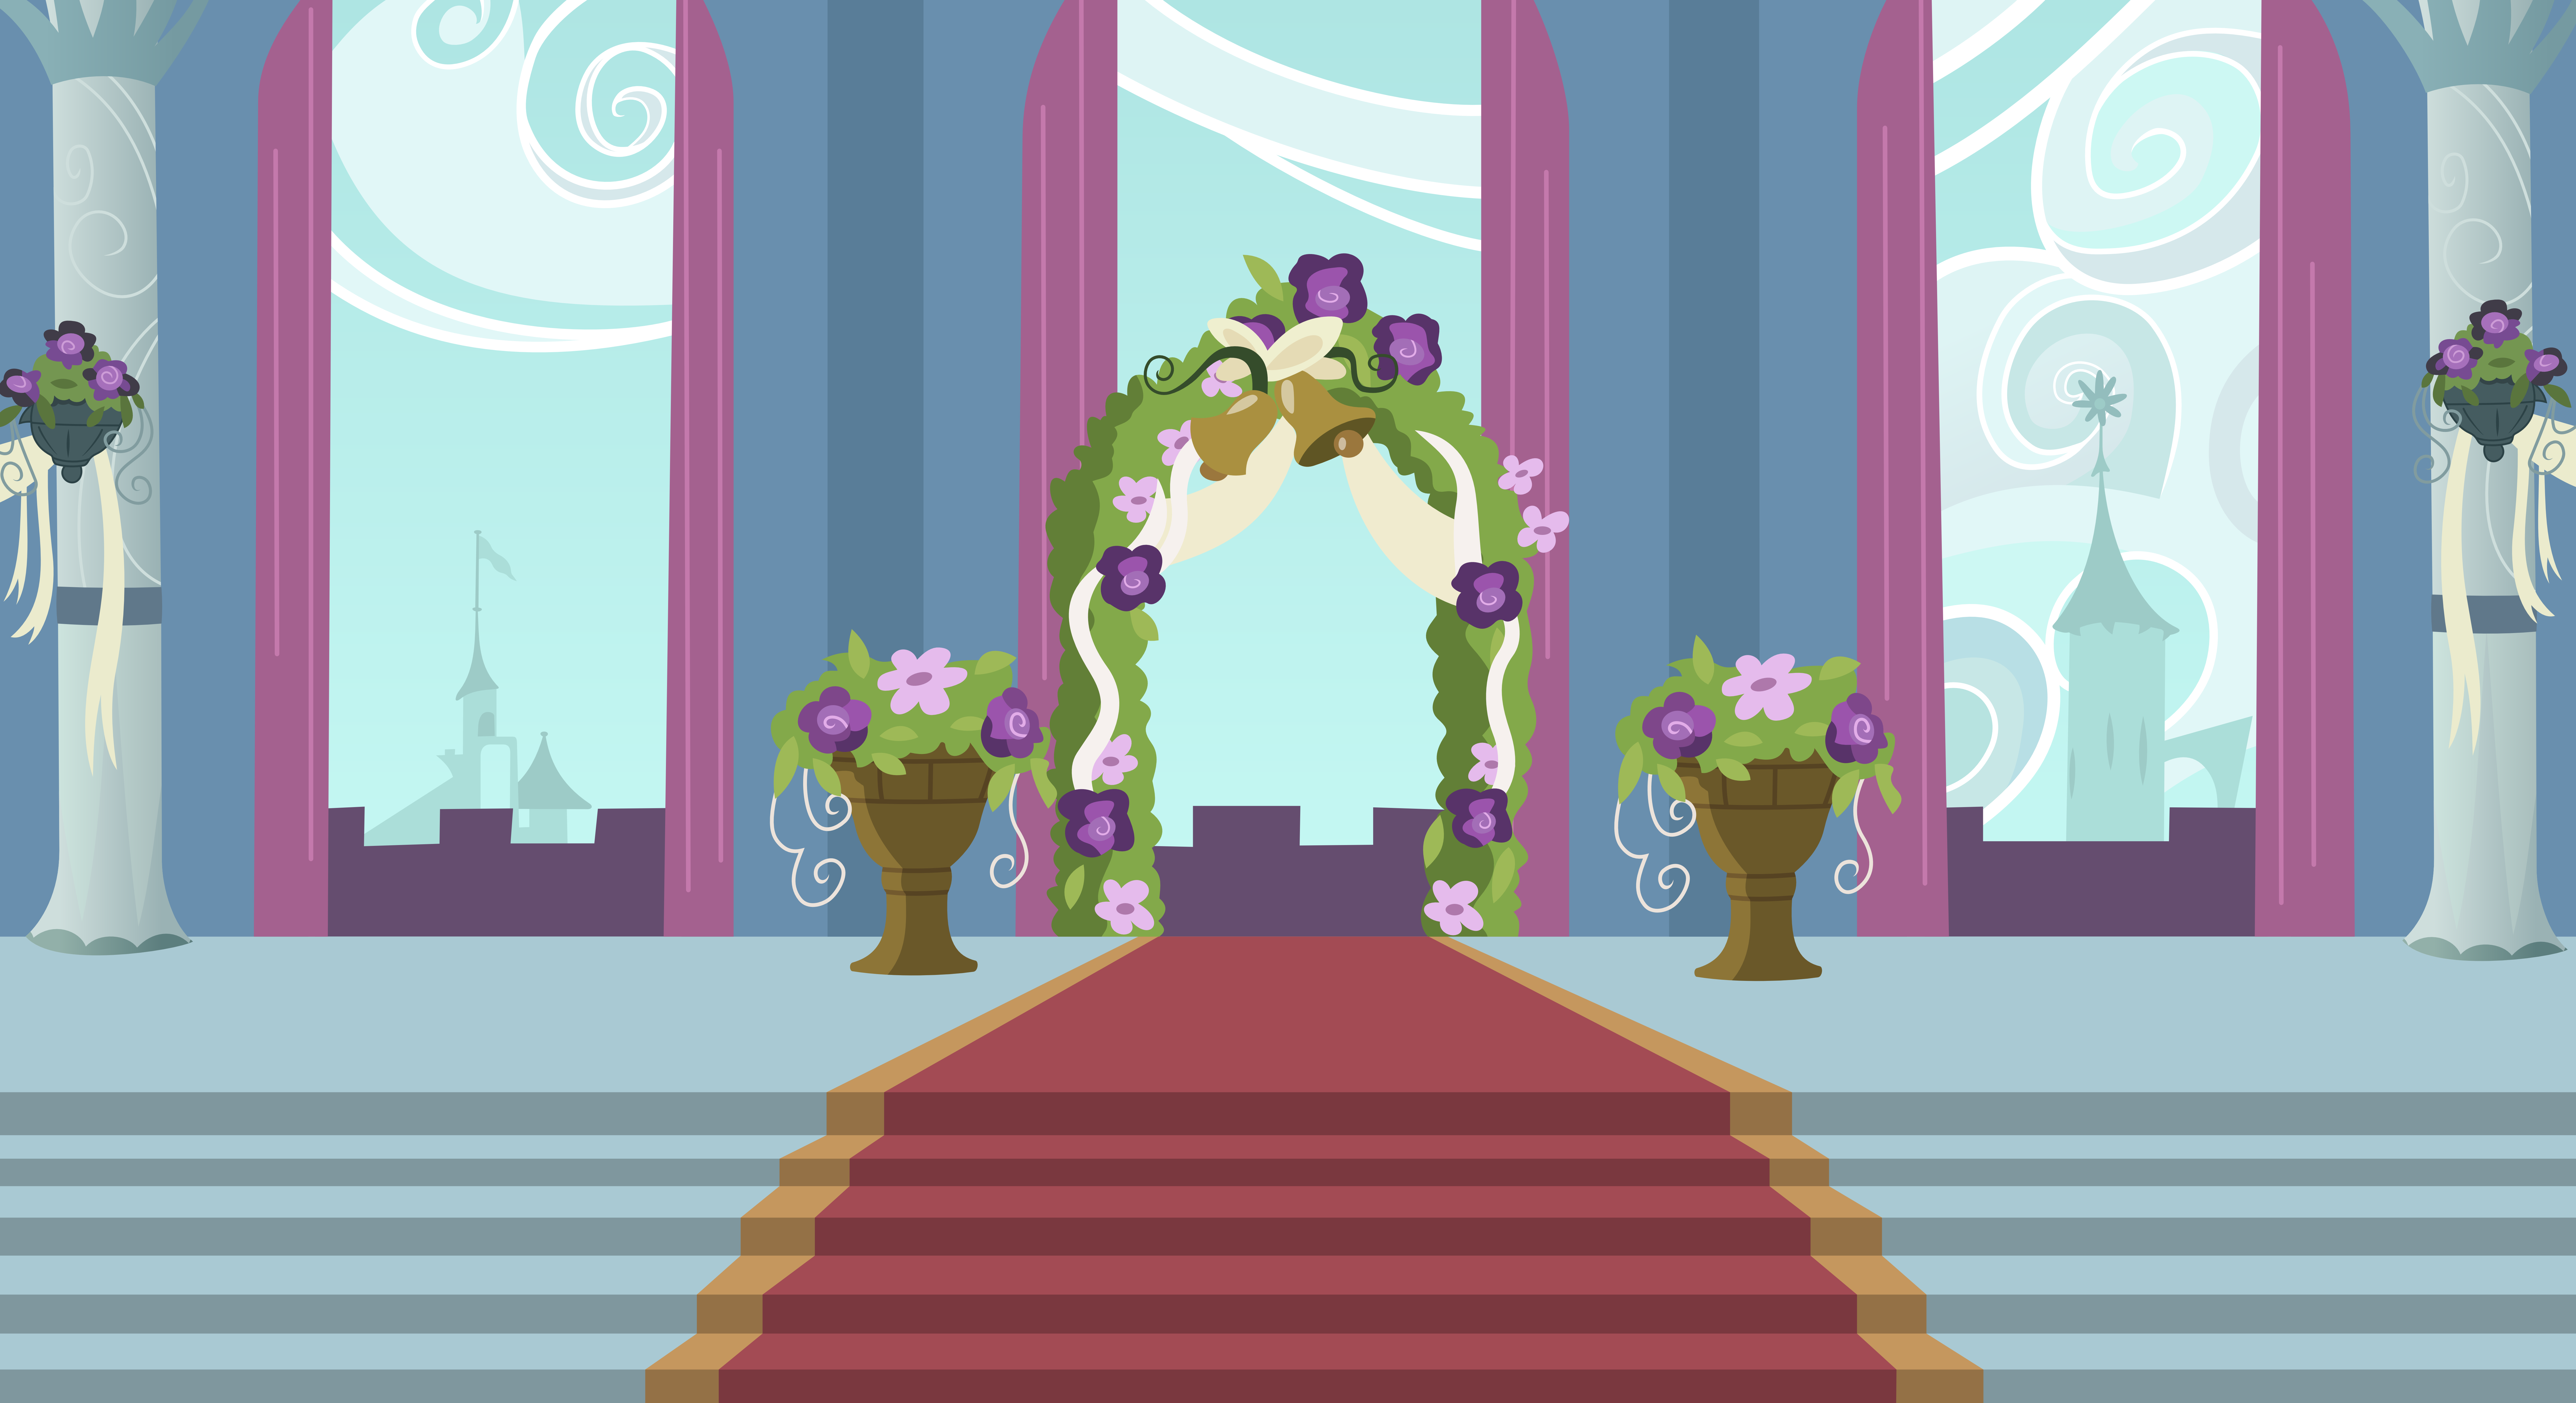 Background canterlot wedding altar by 90sigma on deviantart background canterlot wedding altar by 90sigma junglespirit Gallery